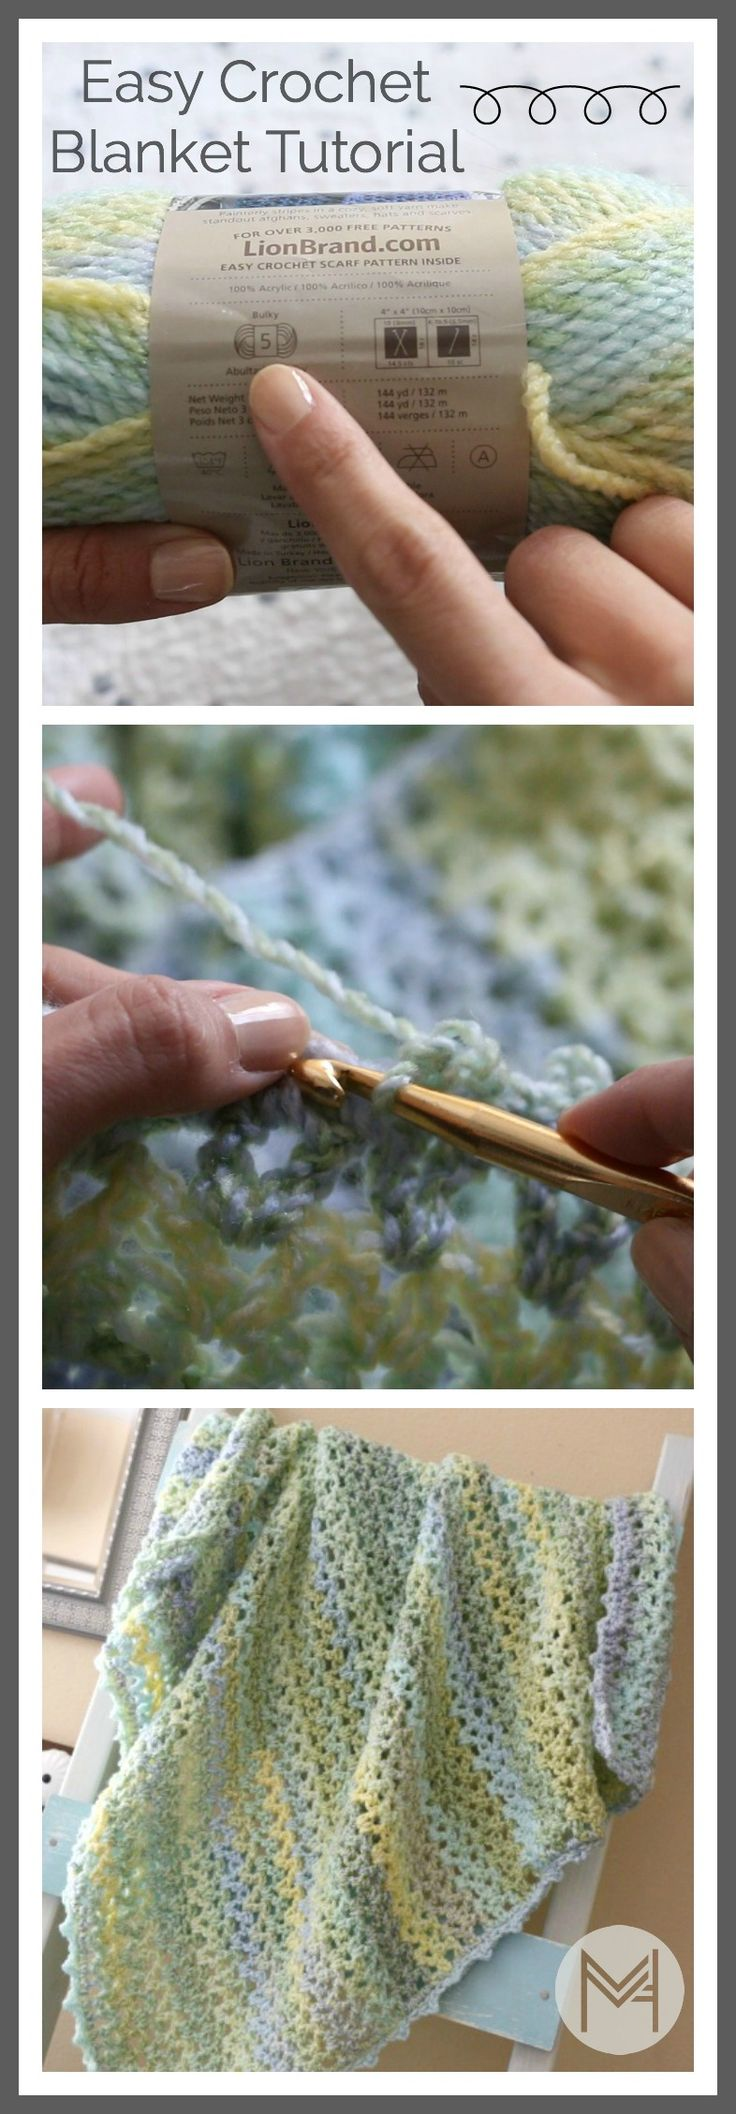 Easy crochet blanket tutorial. Learn to read a pattern and add a border with step by step instructions.